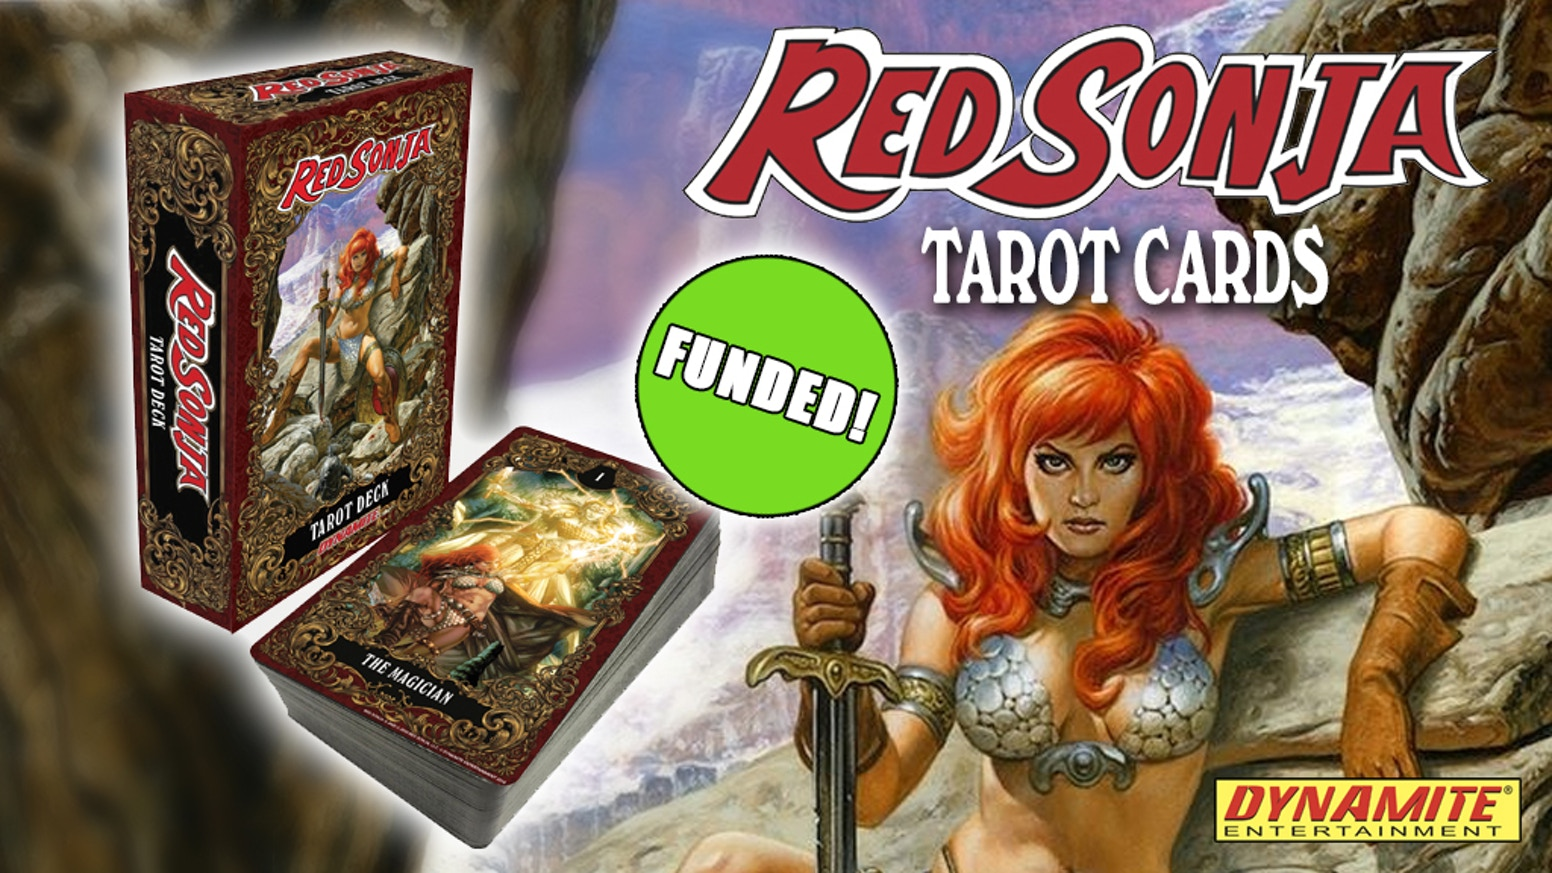 The first tarot deck featuring the art of Red Sonja.